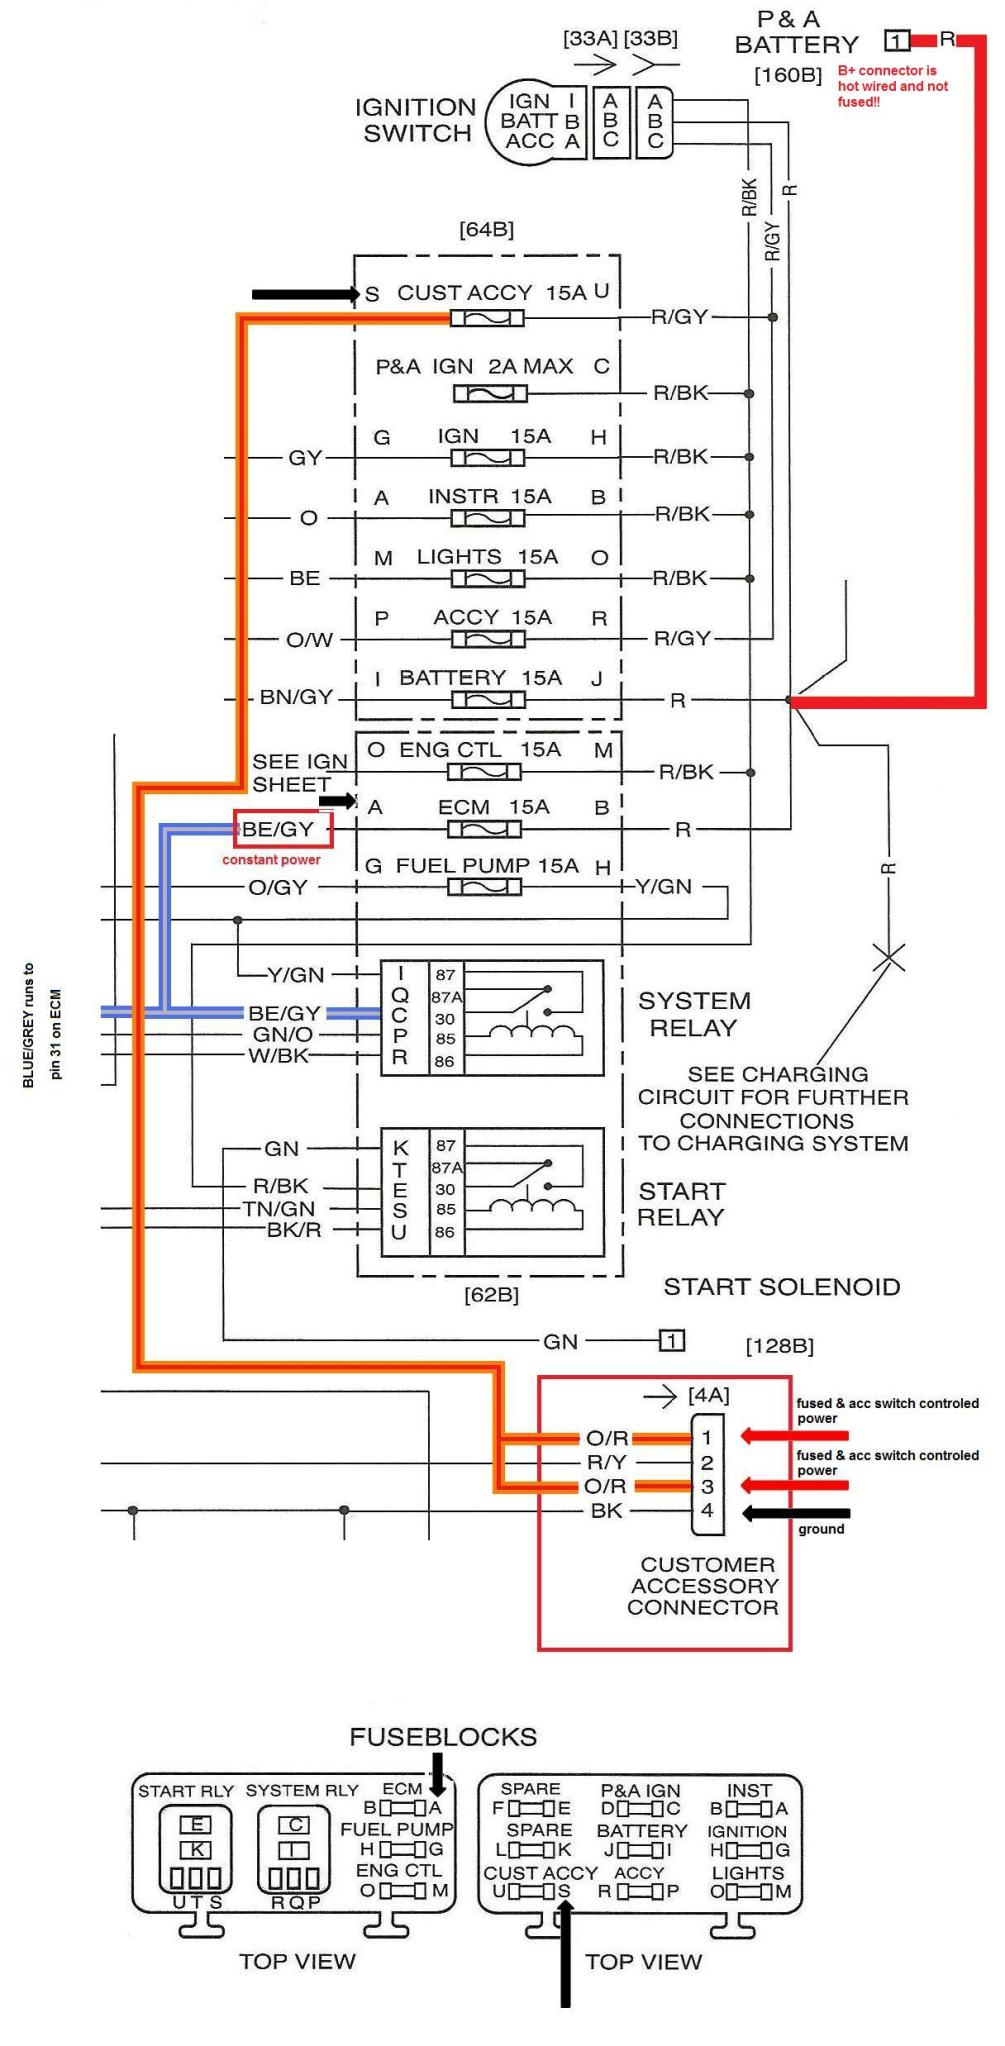 hight resolution of harley wiring diagram wires wiring diagram blogs harley davidson wiring harness diagram dyna power tie